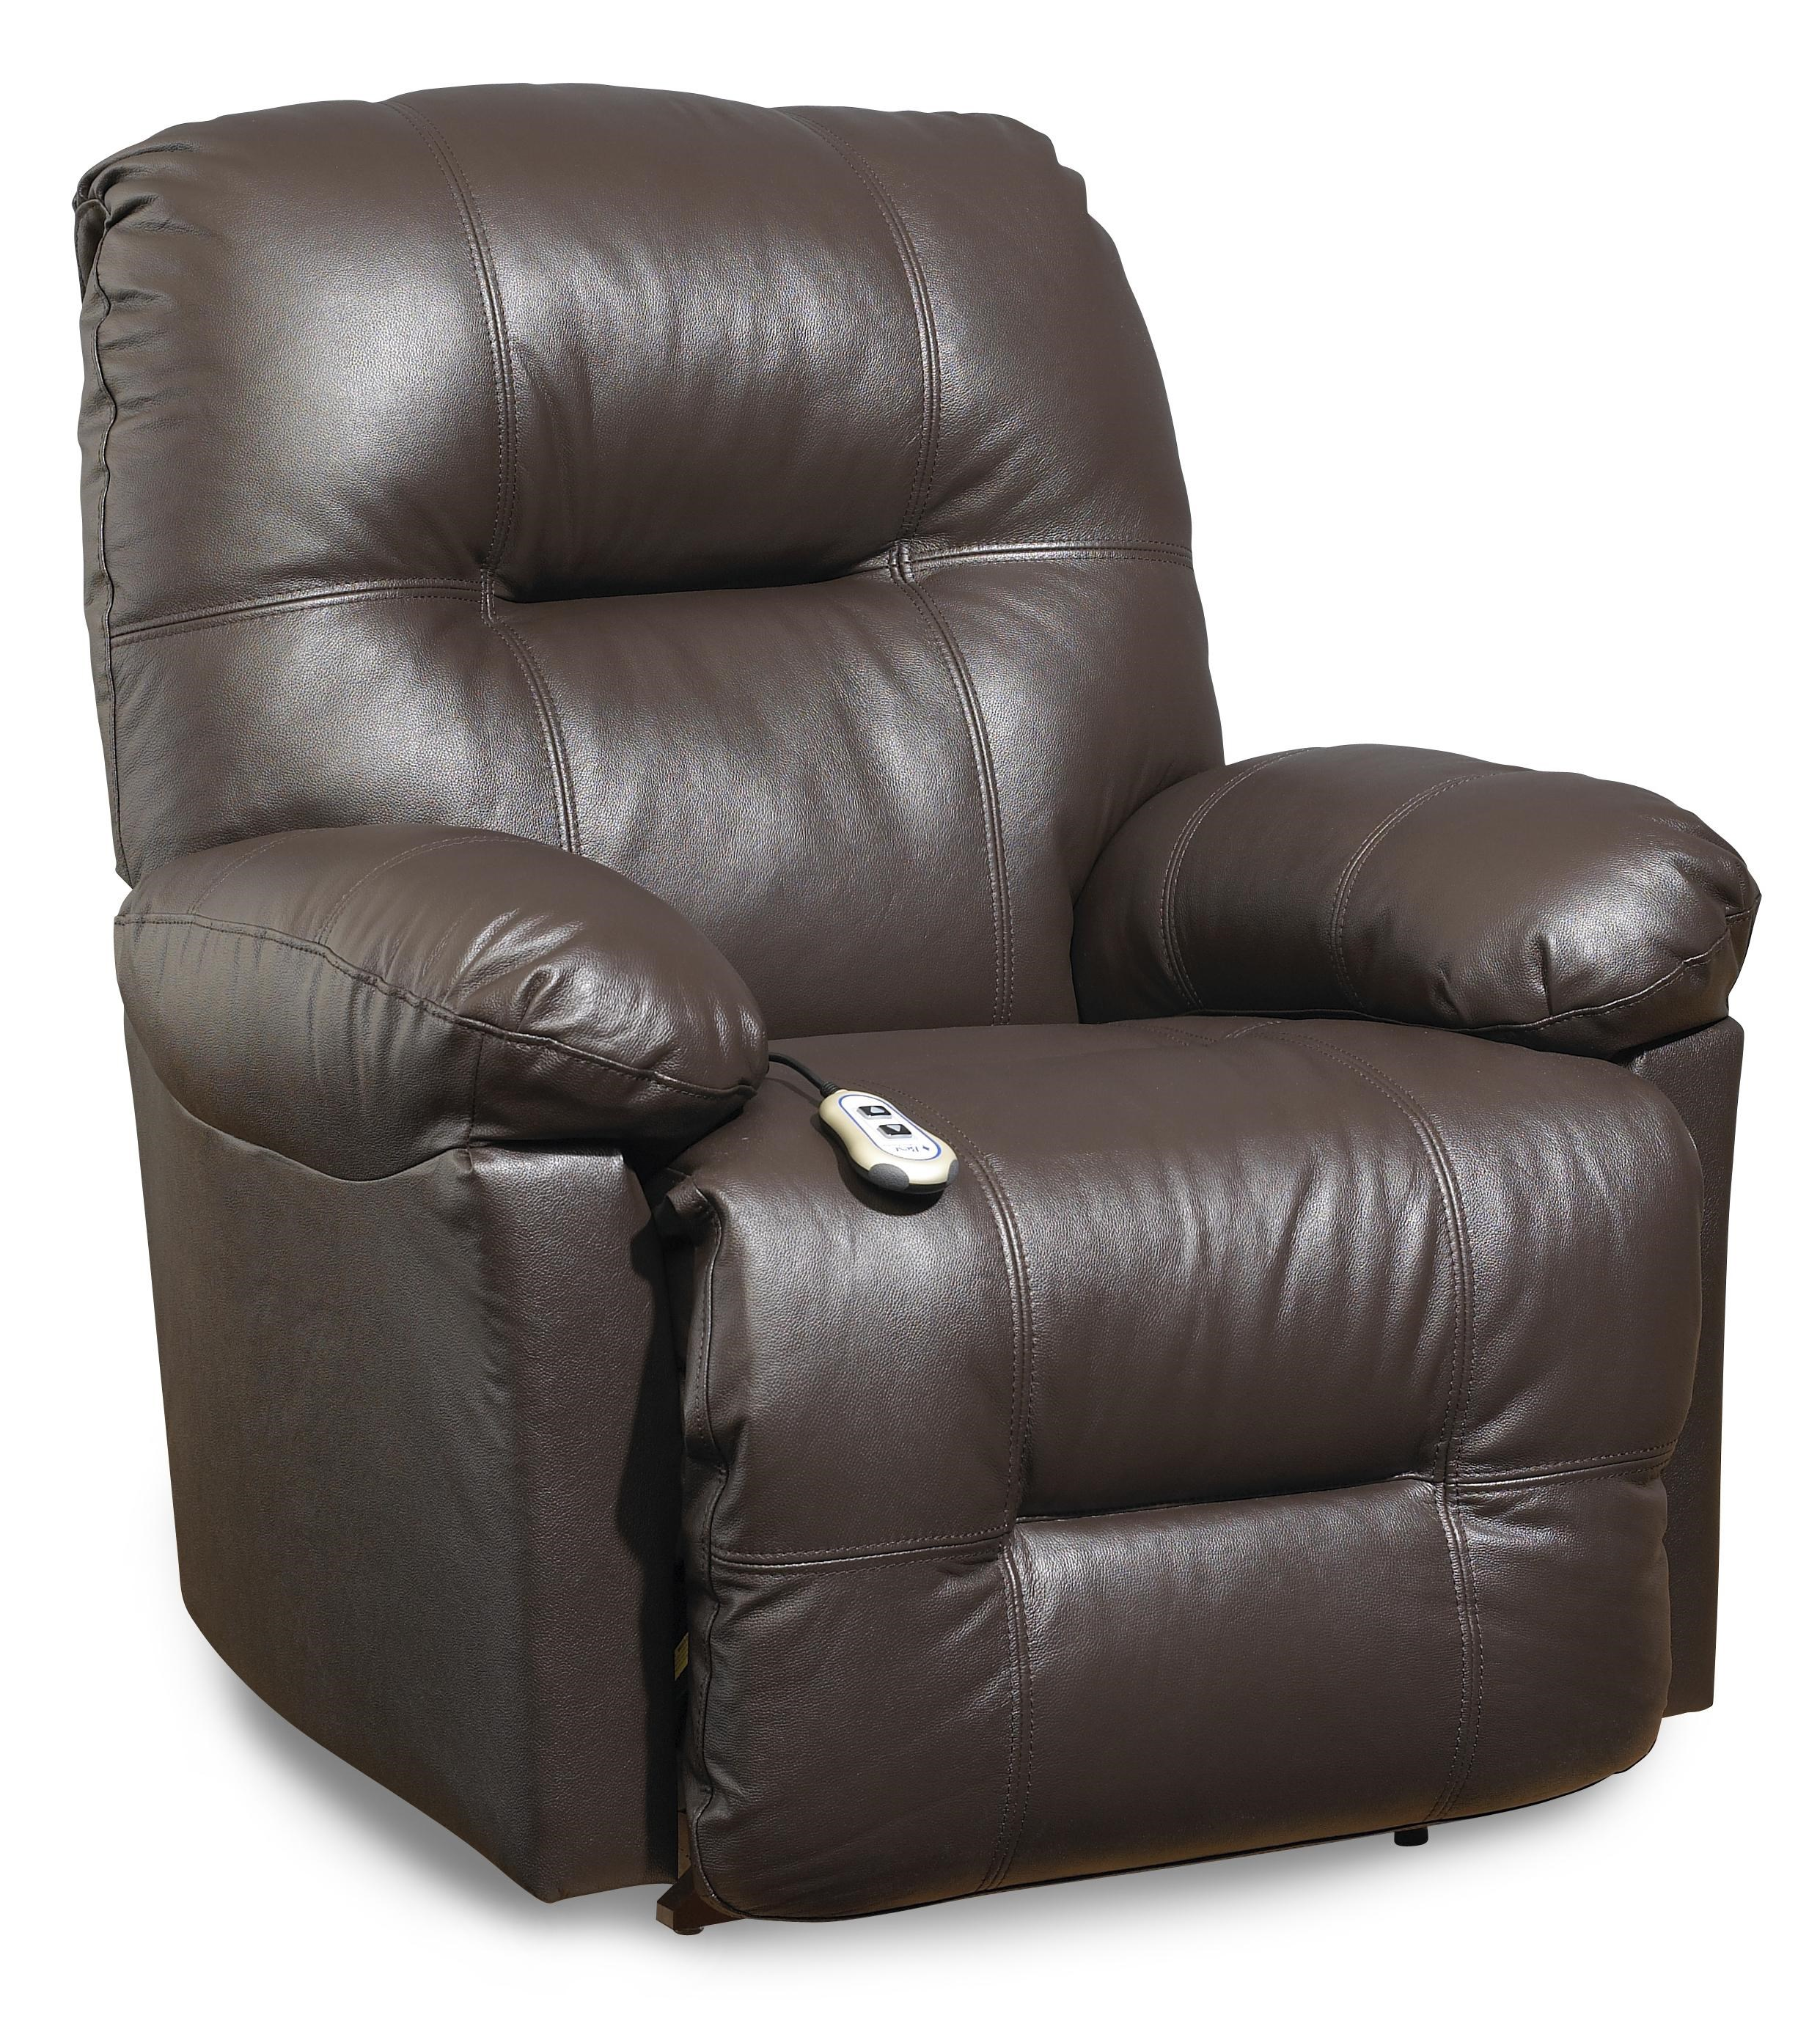 Recliner Shown May Not Represent Exact Features Indicated  sc 1 st  Baeru0027s Furniture & Best Home Furnishings S501 Zaynah Casual Power Lift Recliner ... islam-shia.org